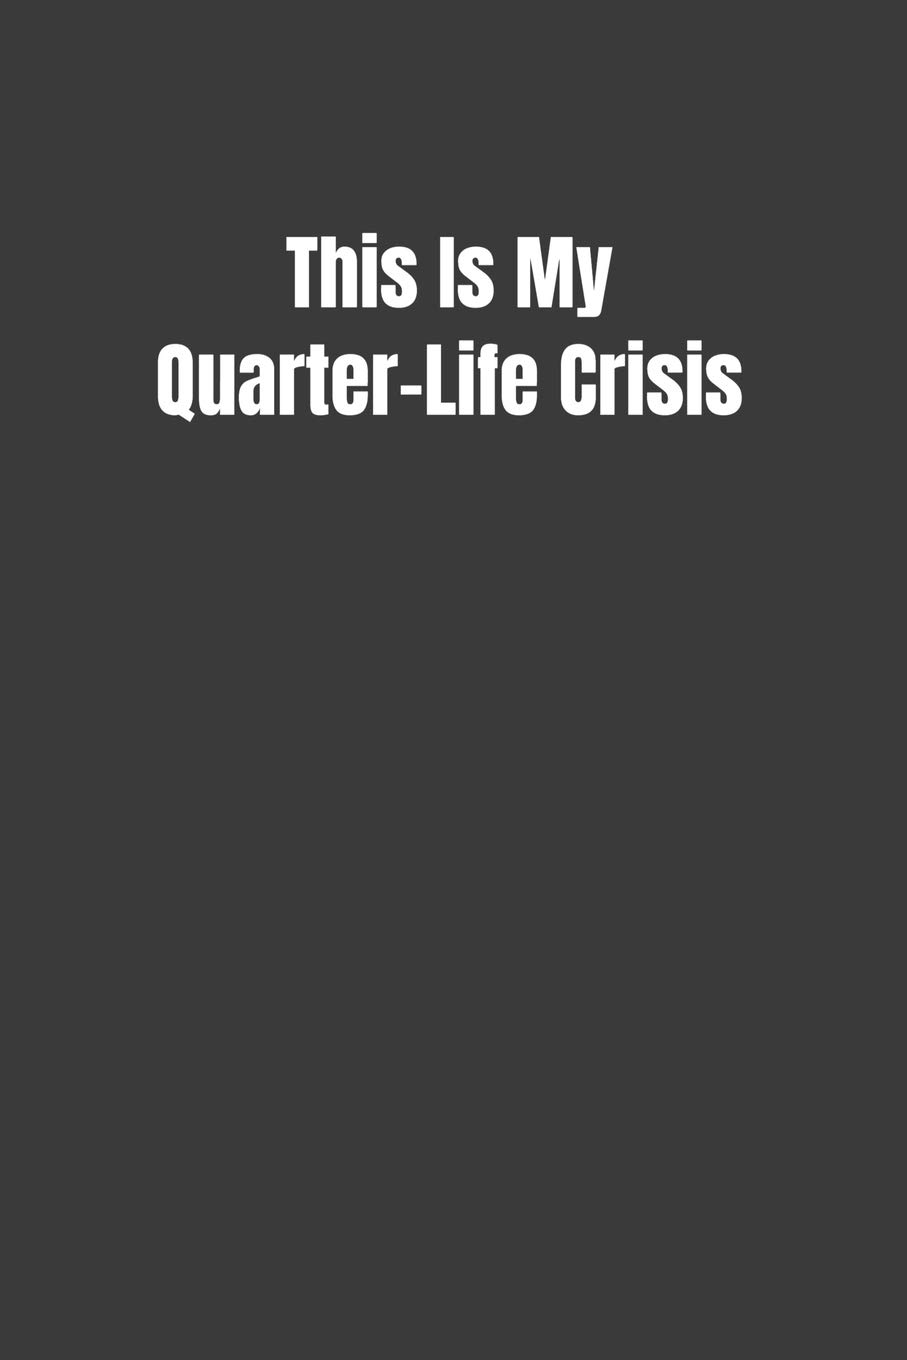 This Is My Quarter Life Crisis Blank Lined Notebook For Writing Planning Or Journaling 6x9 100 Pages Fox Jane 9781079597882 Amazon Com Books